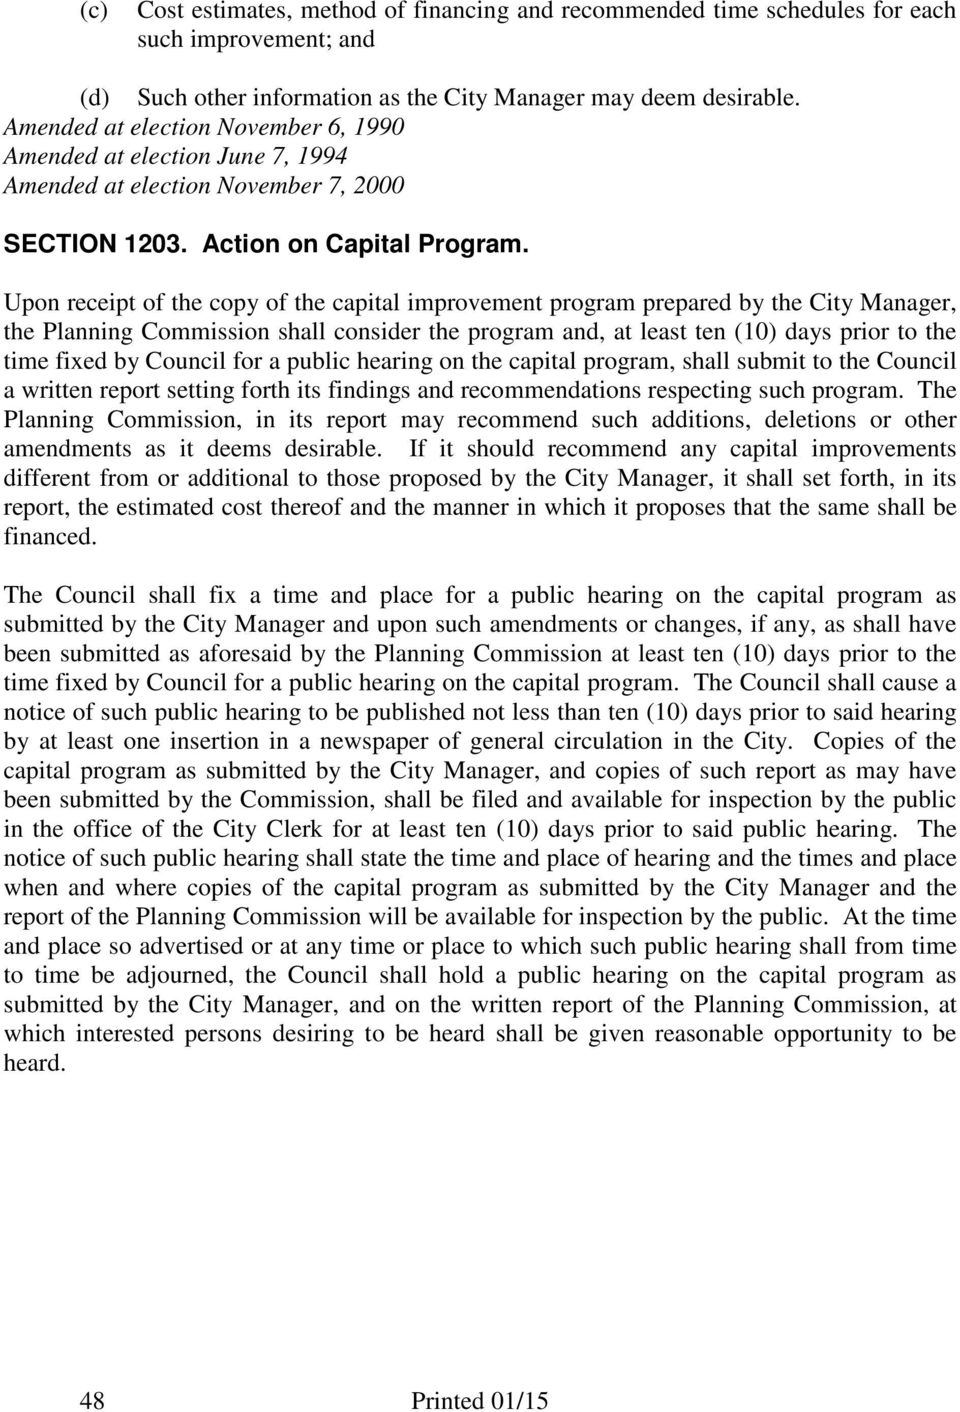 Upon receipt of the copy of the capital improvement program prepared by the City Manager, the Planning Commission shall consider the program and, at least ten (10) days prior to the time fixed by